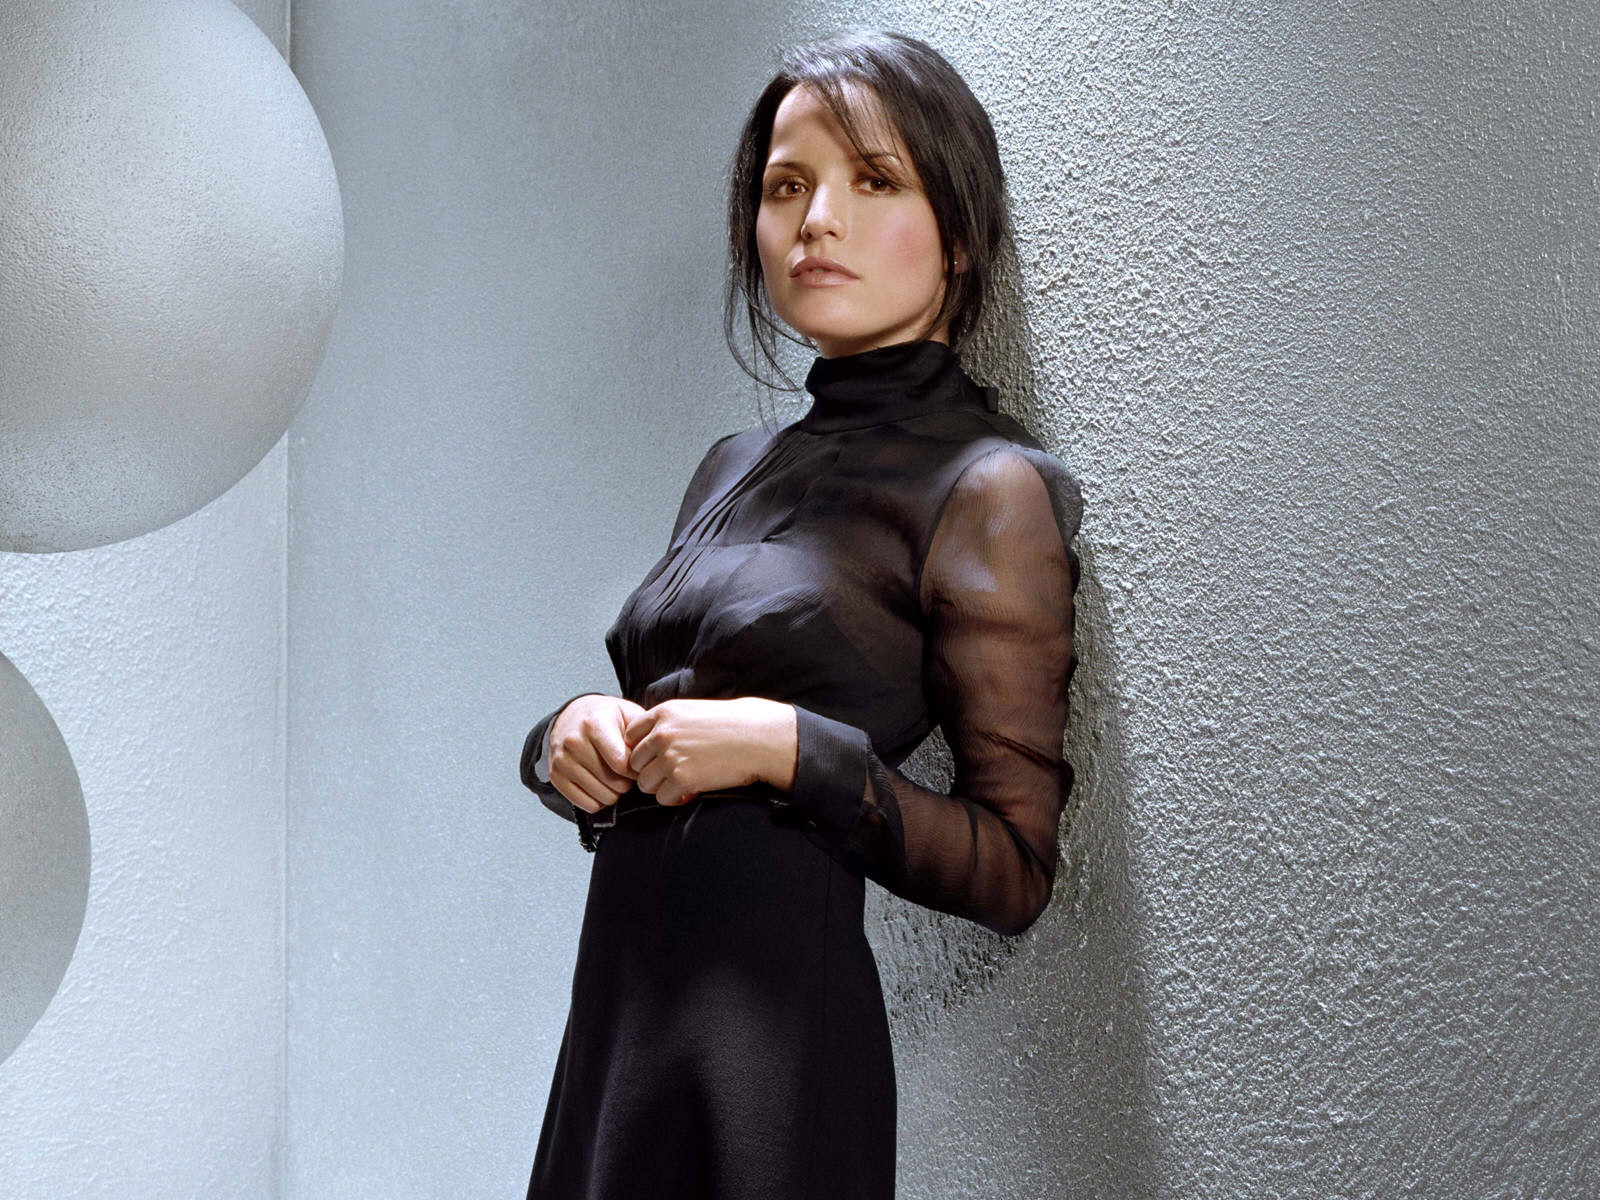 Andrea corr hot pictures photo gallery wallpapers hot andrea corr pictures altavistaventures Image collections